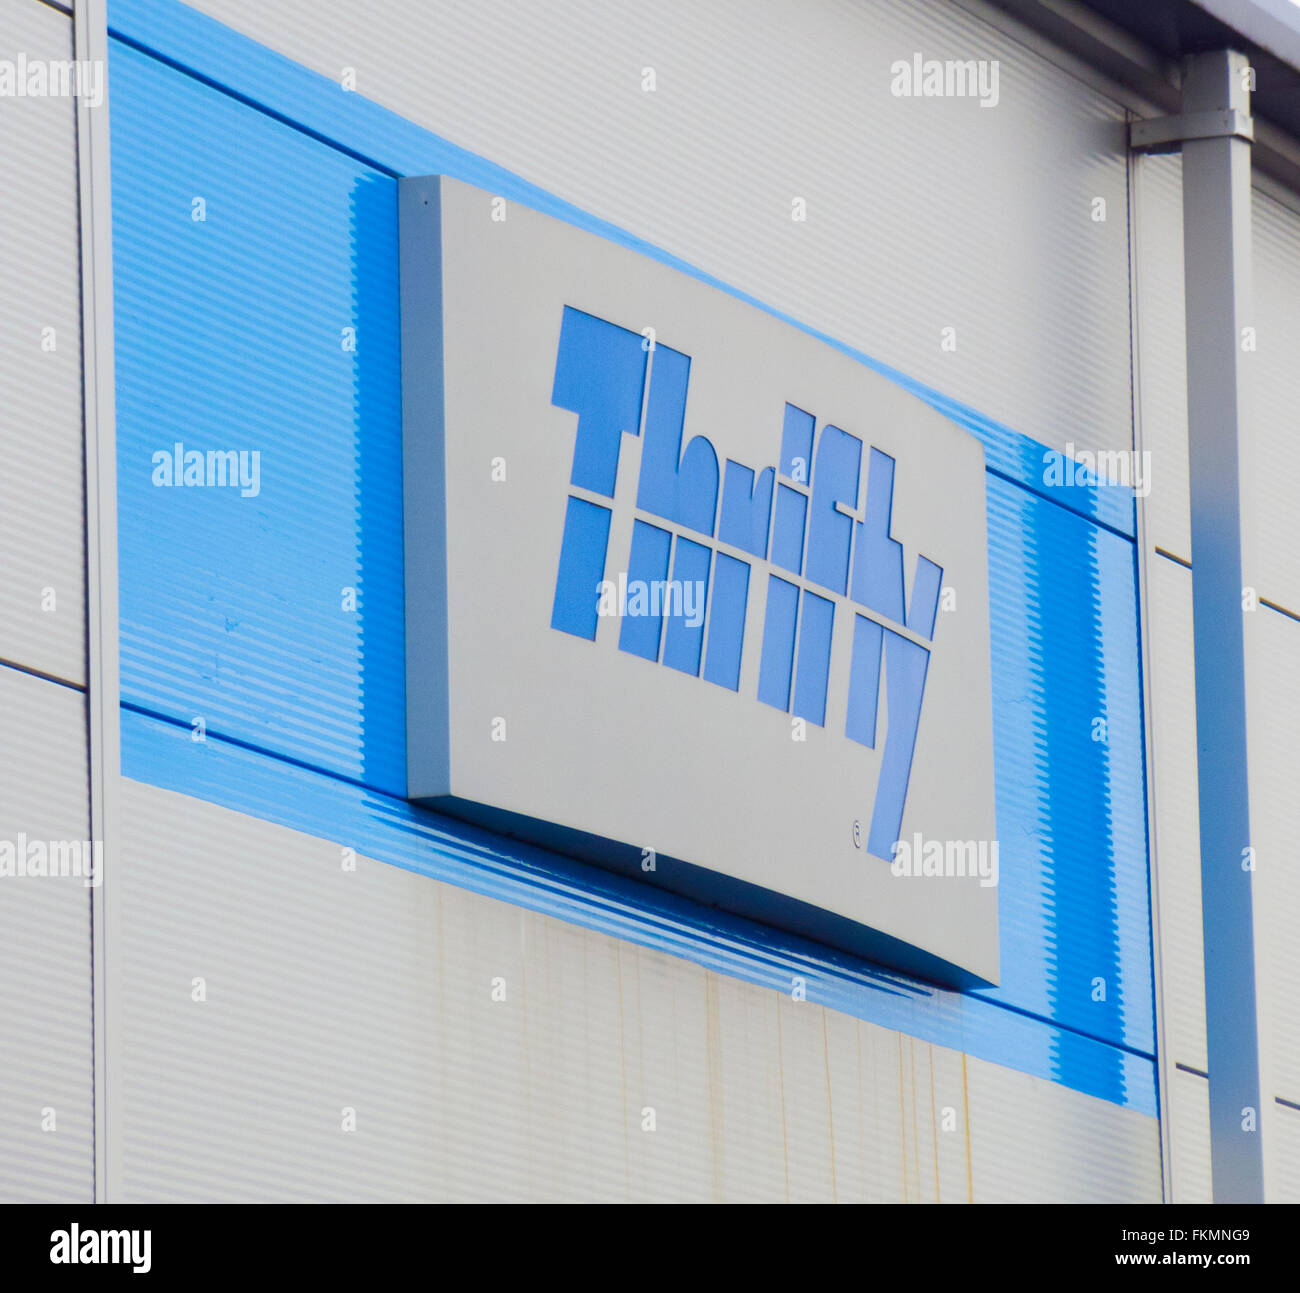 Thrifty Vehicle Rental Sign, UK - Stock Image